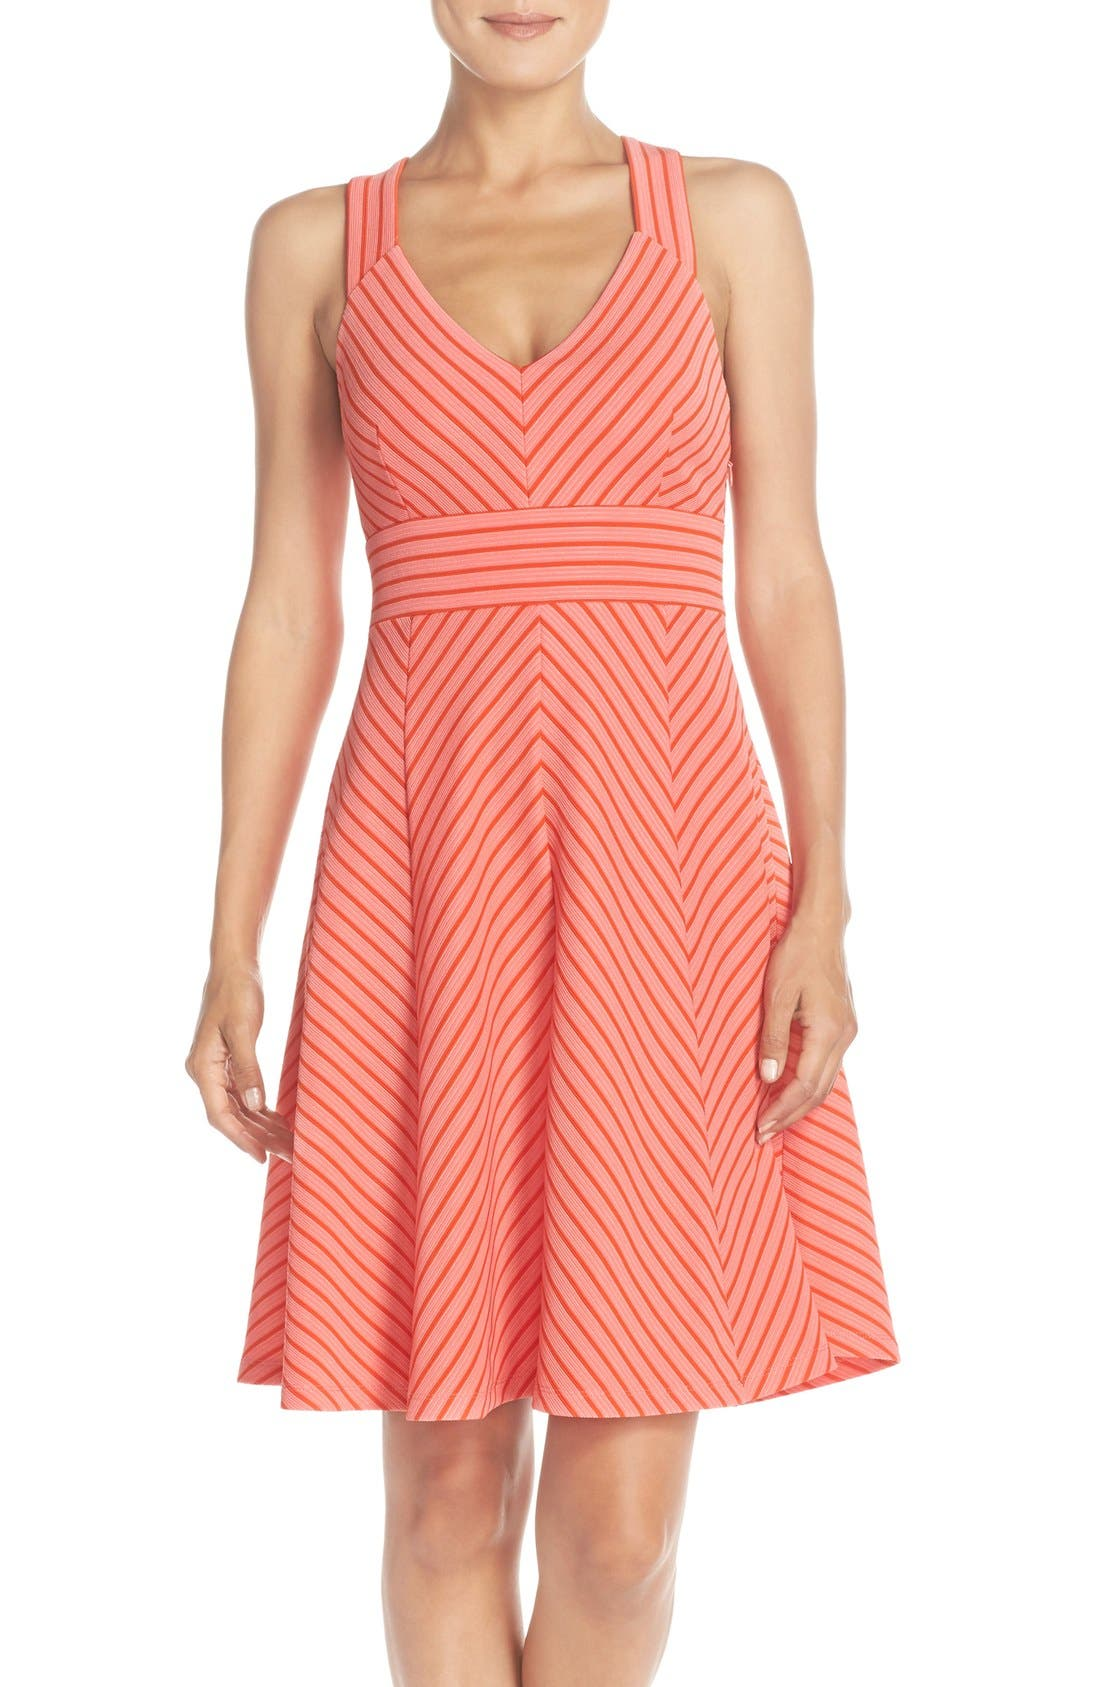 Main Image - Adrianna Papell Stripe Ottoman Knit Sundress (Regular & Petite)